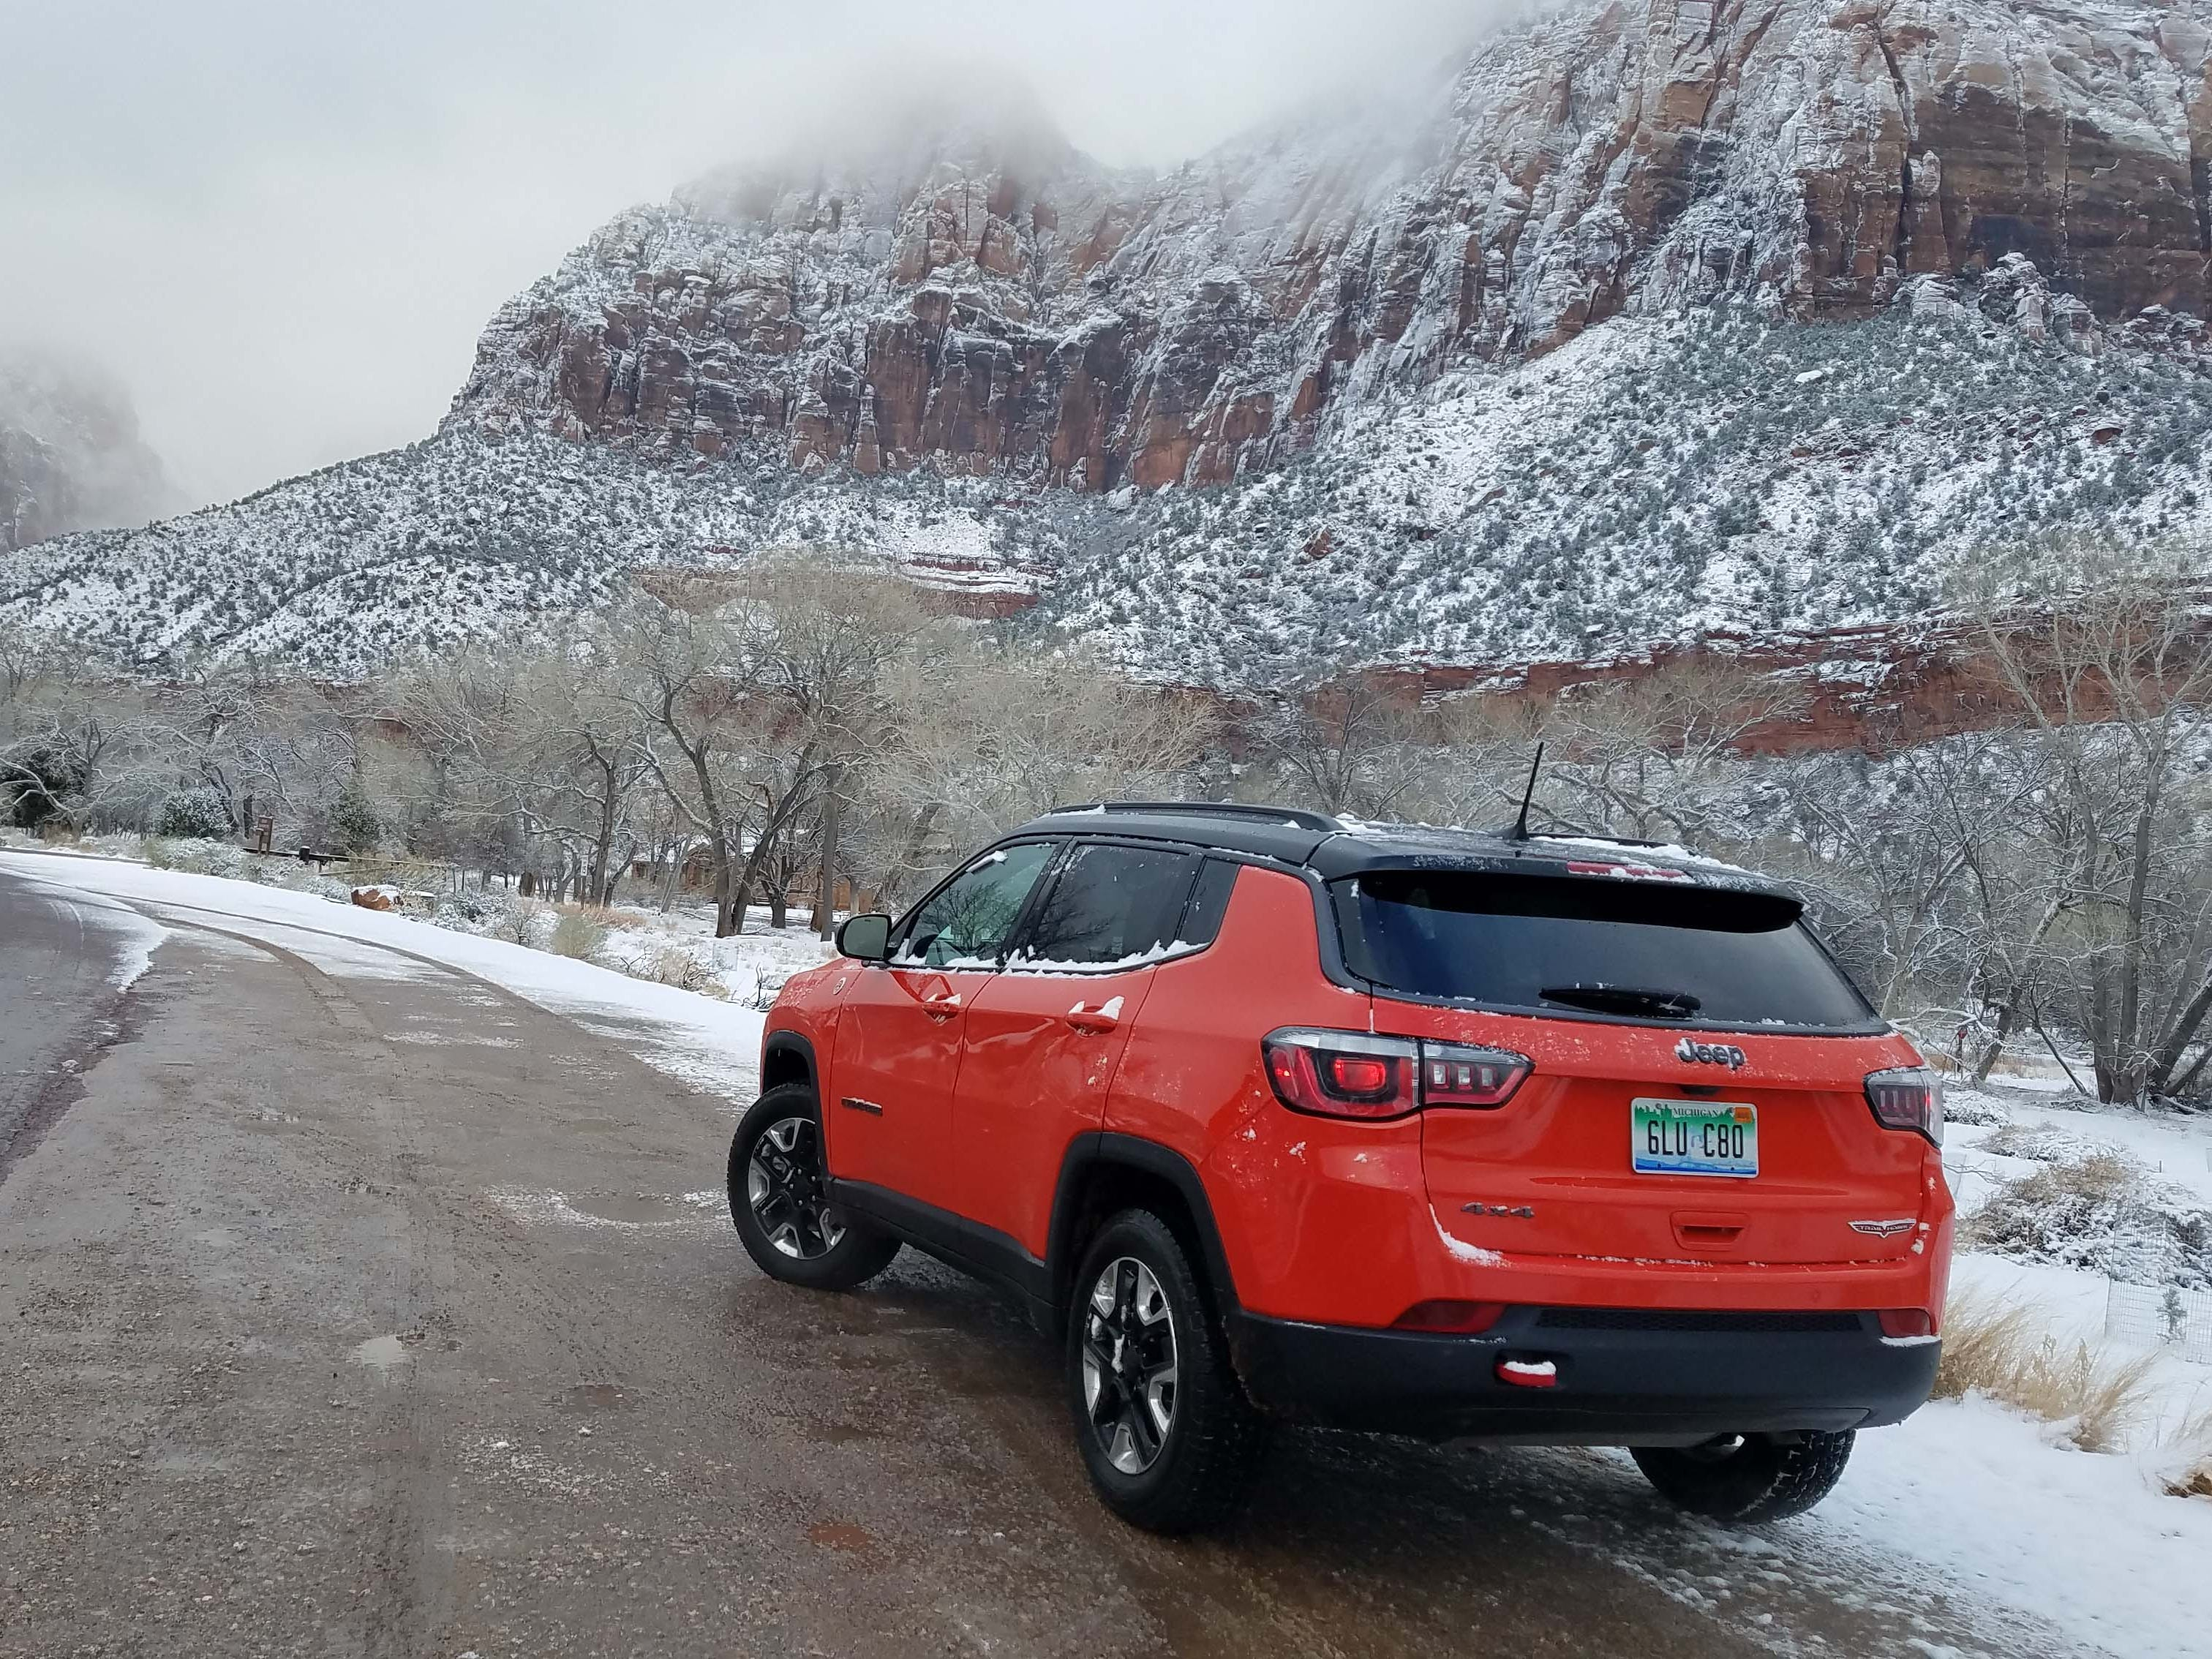 Have Jeep, will travel. The Jeep Compass Trailhawk enters Zion Canyon in the teeth of winter.